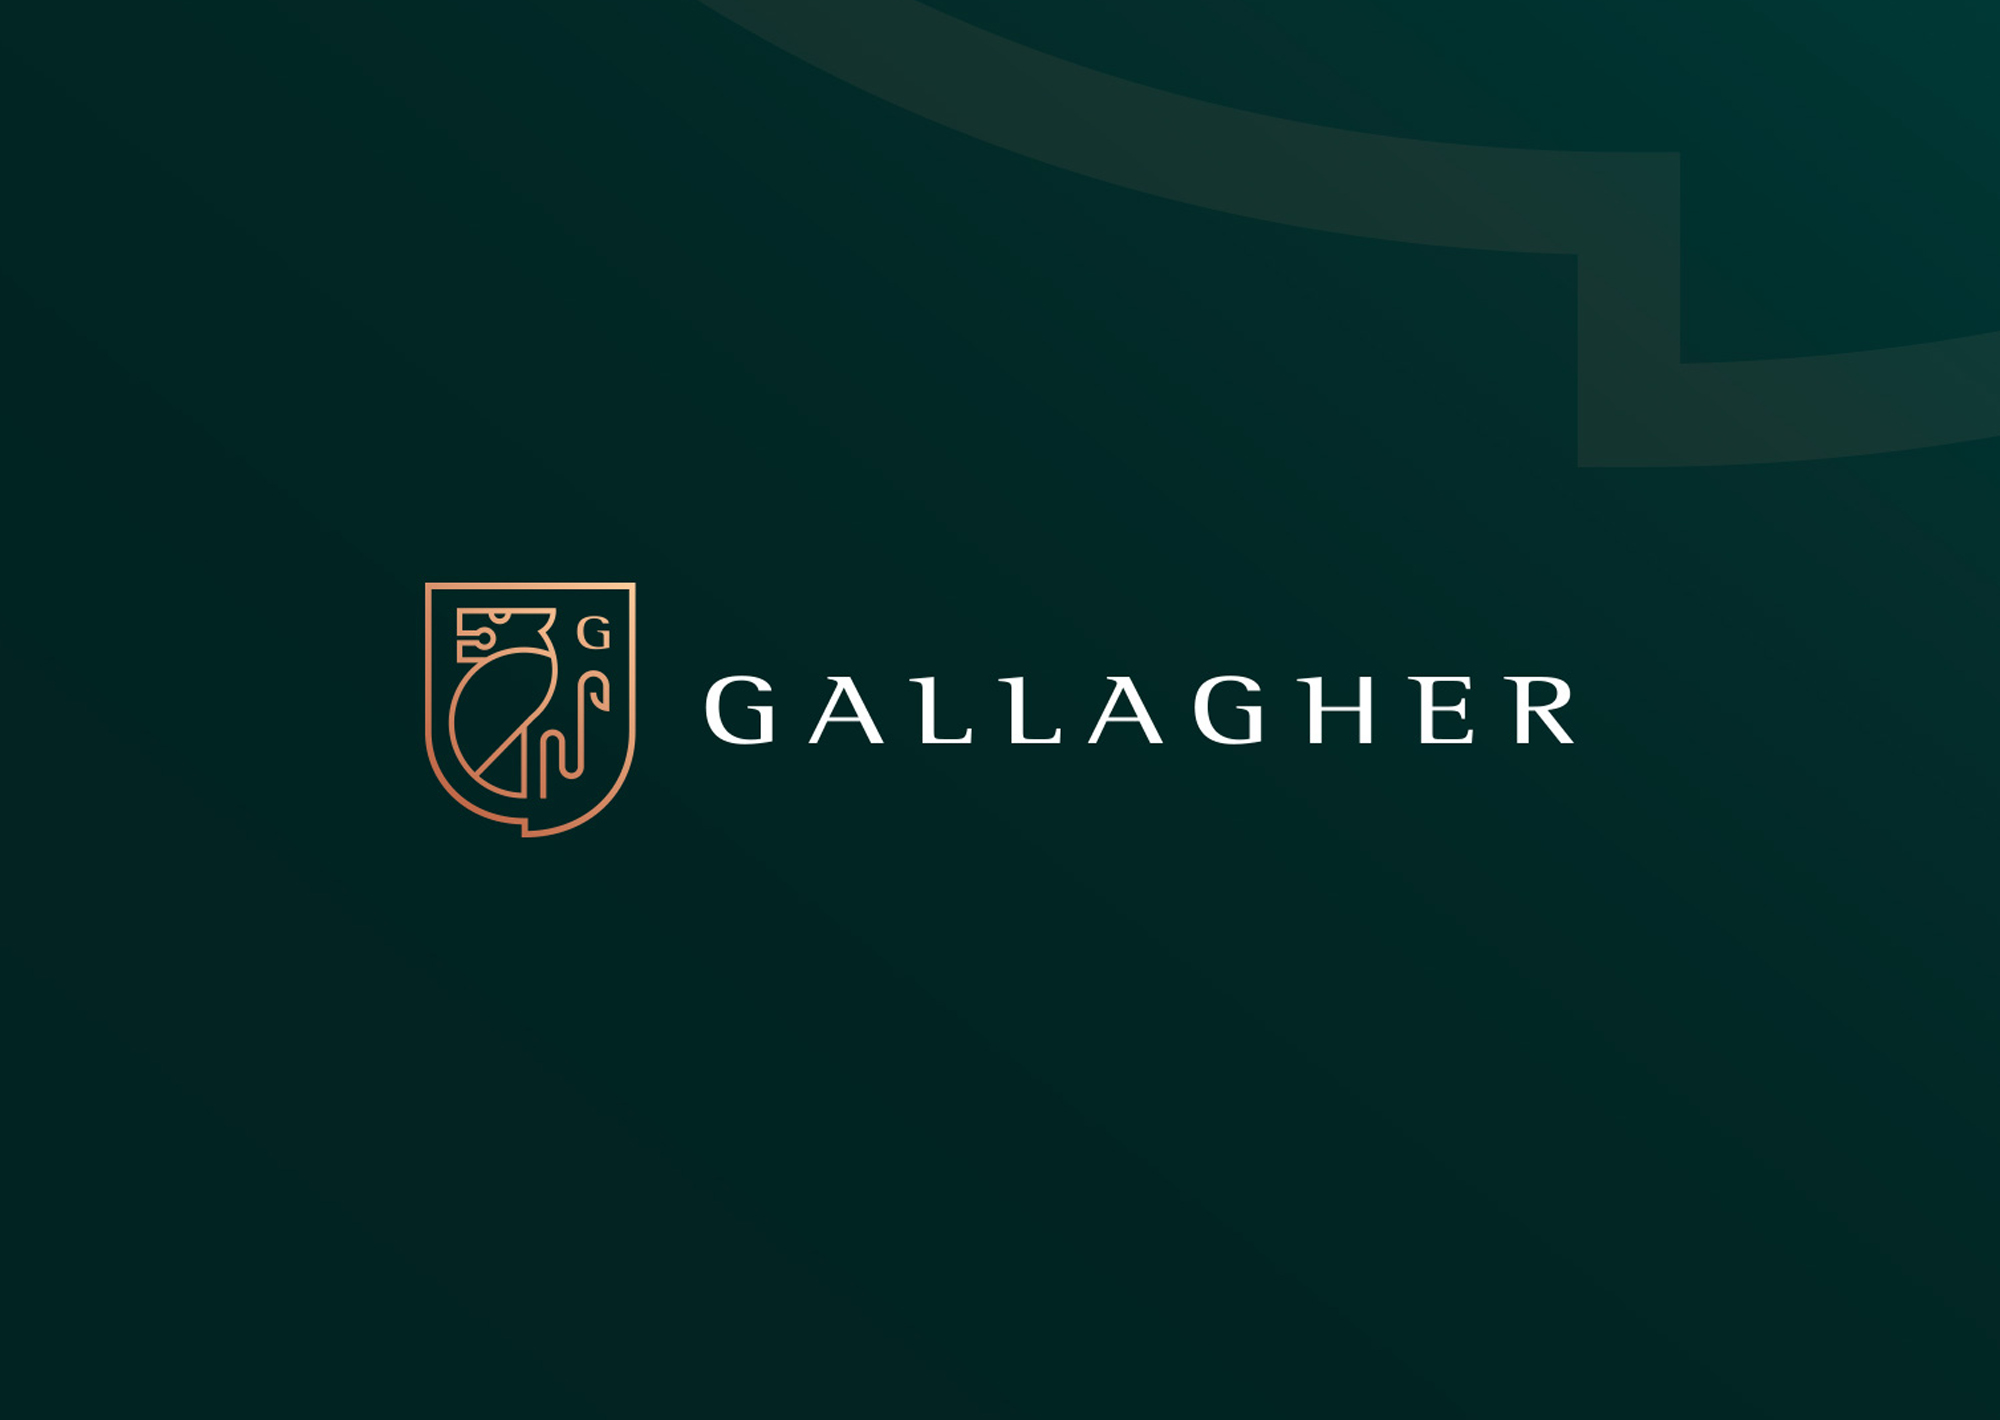 Cover image: Gallagher